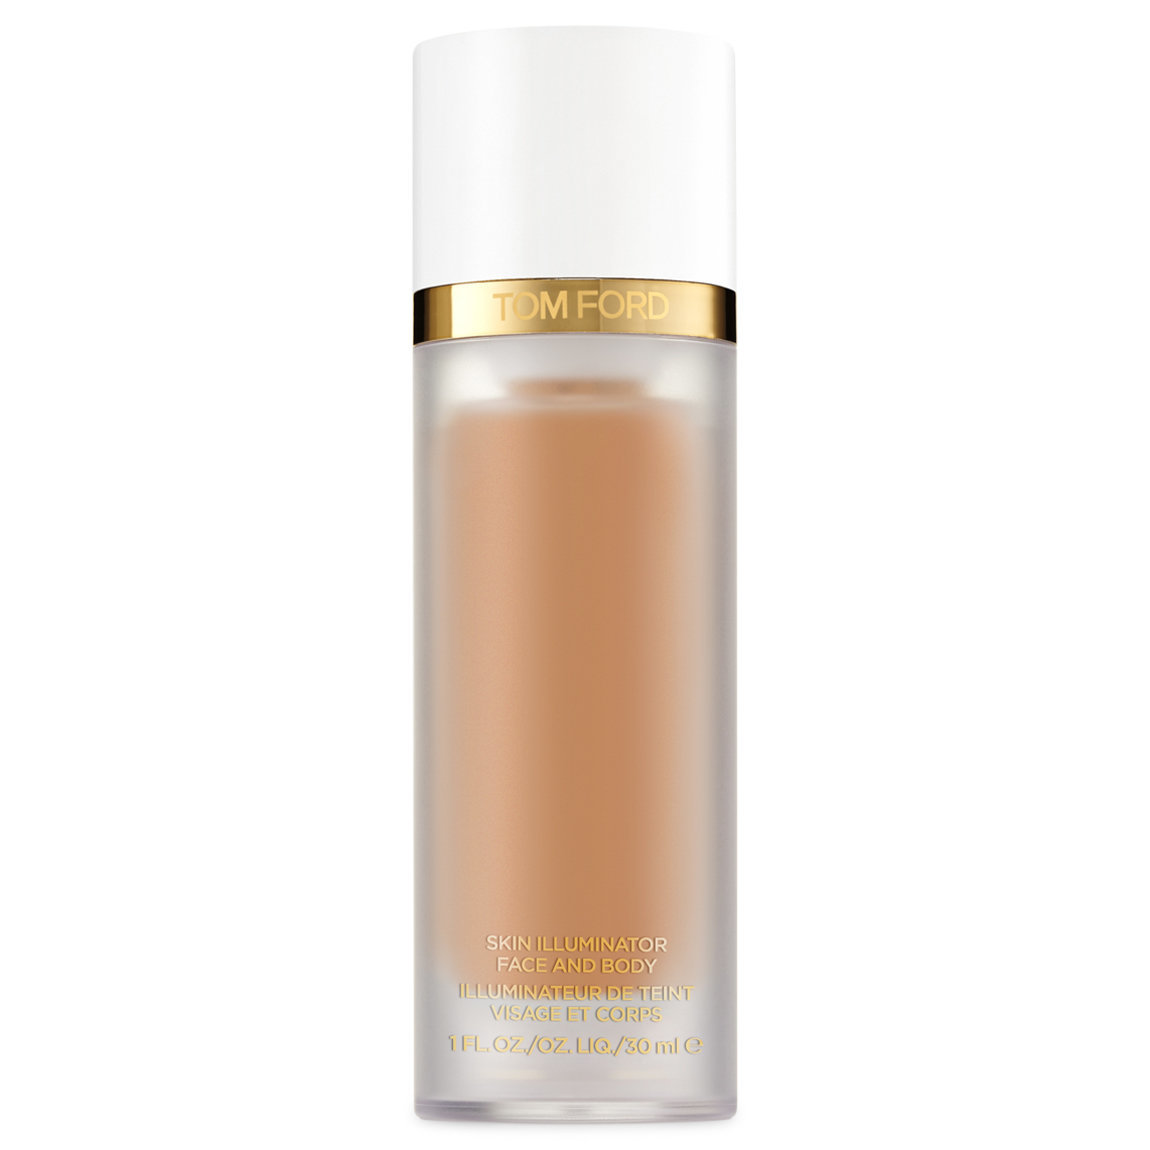 TOM FORD Face and Body Skin Illuminator 01 Gilt Glow alternative view 1 - product swatch.